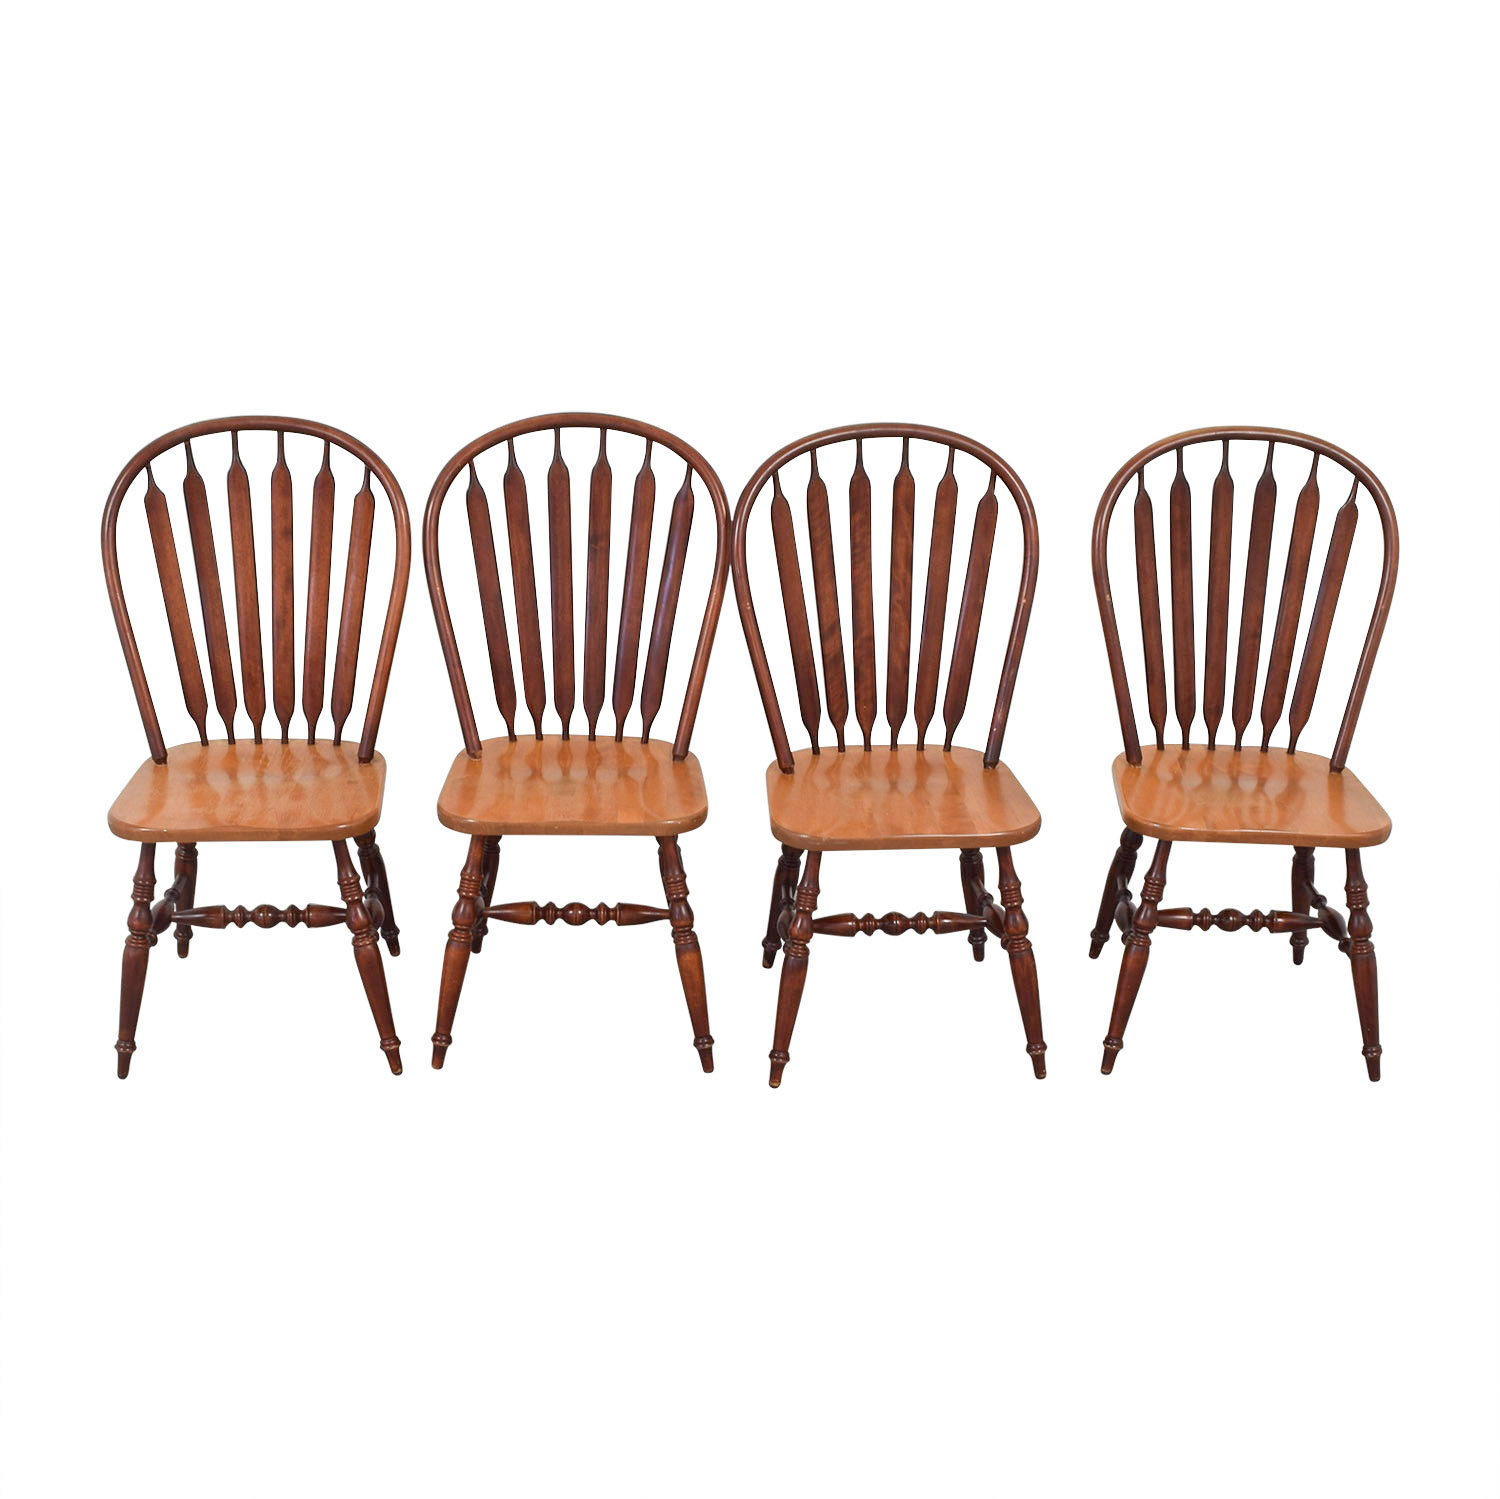 Canadel Canadel Windsor Wood Dining Chairs Light Brown